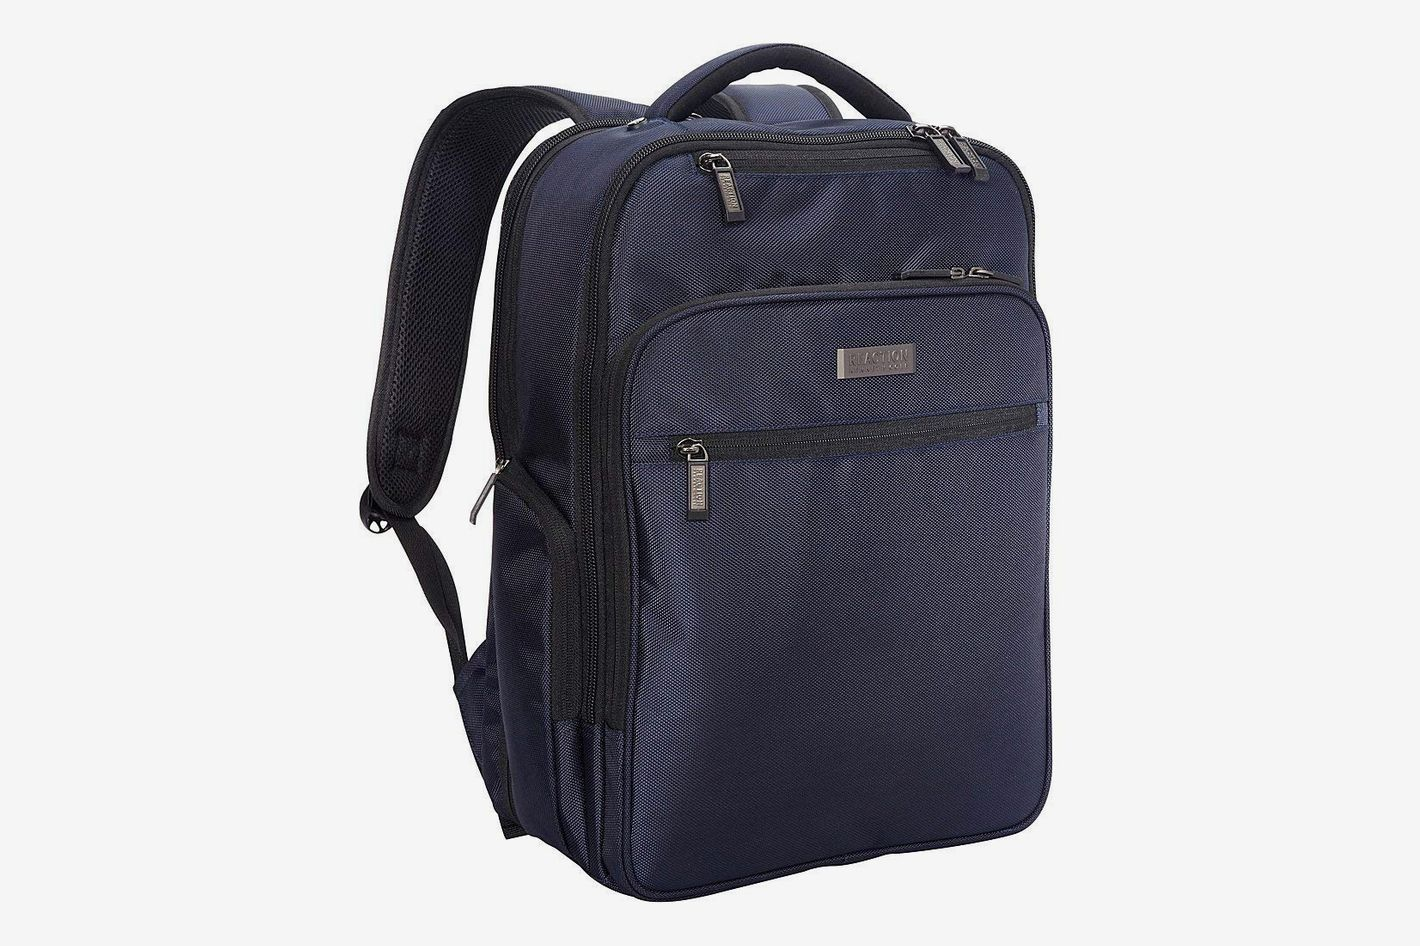 d0301c4f0e1e Kenneth Cole Reaction Brooklyn Commuter Laptop Backpack